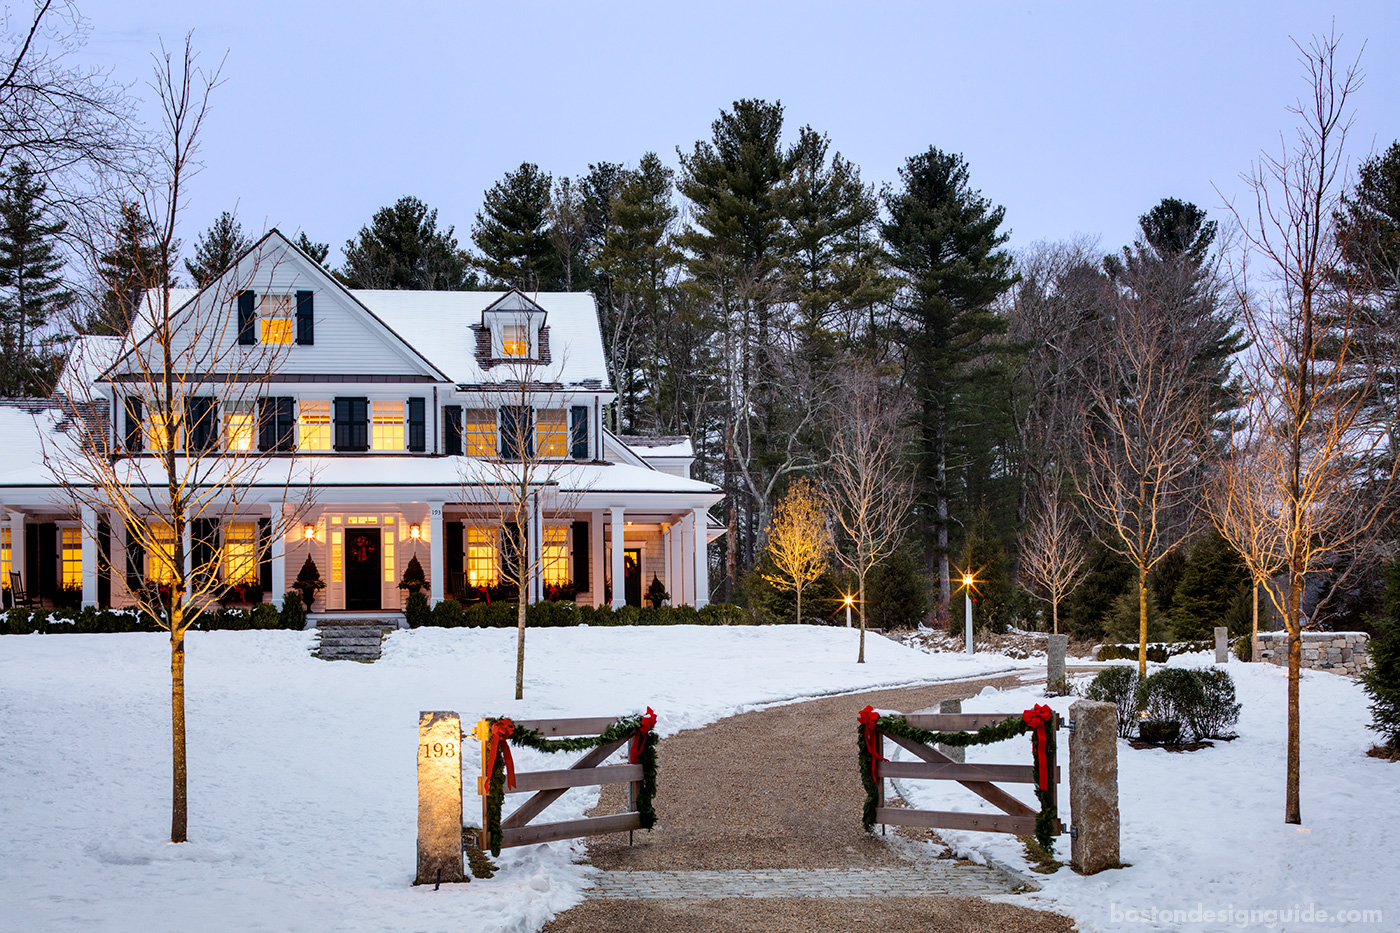 High-end traditional New England residence dressed for the holidays